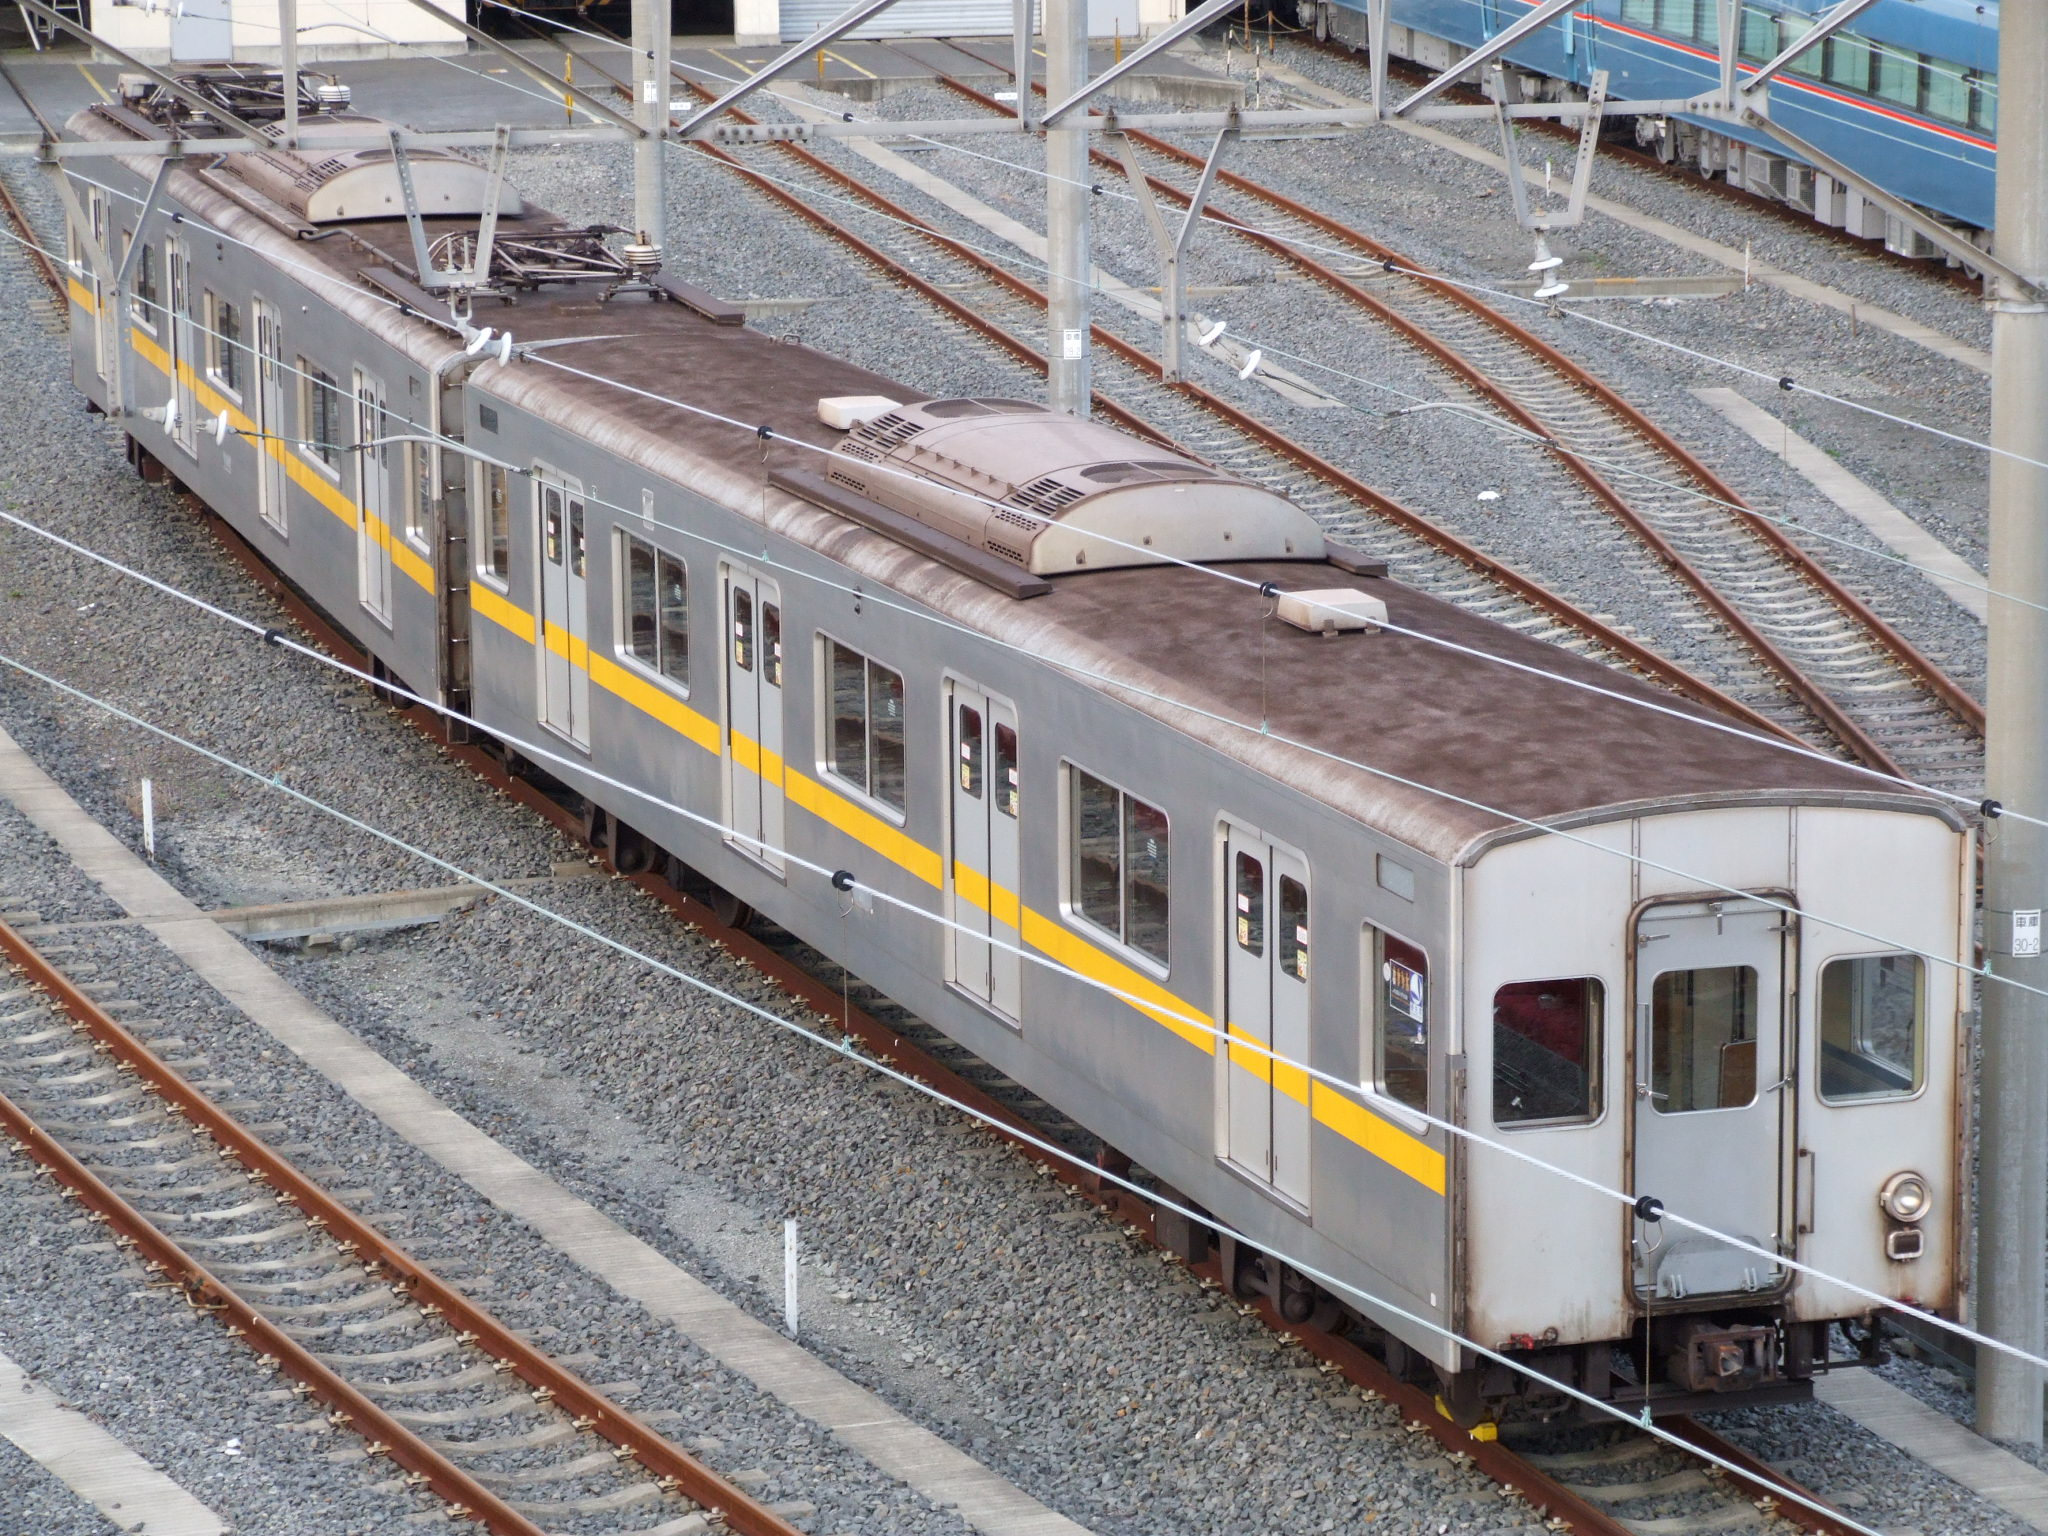 https://upload.wikimedia.org/wikipedia/commons/e/ed/Model_7000-7600_of_Teito_Rapid_Transit_Authority.JPG